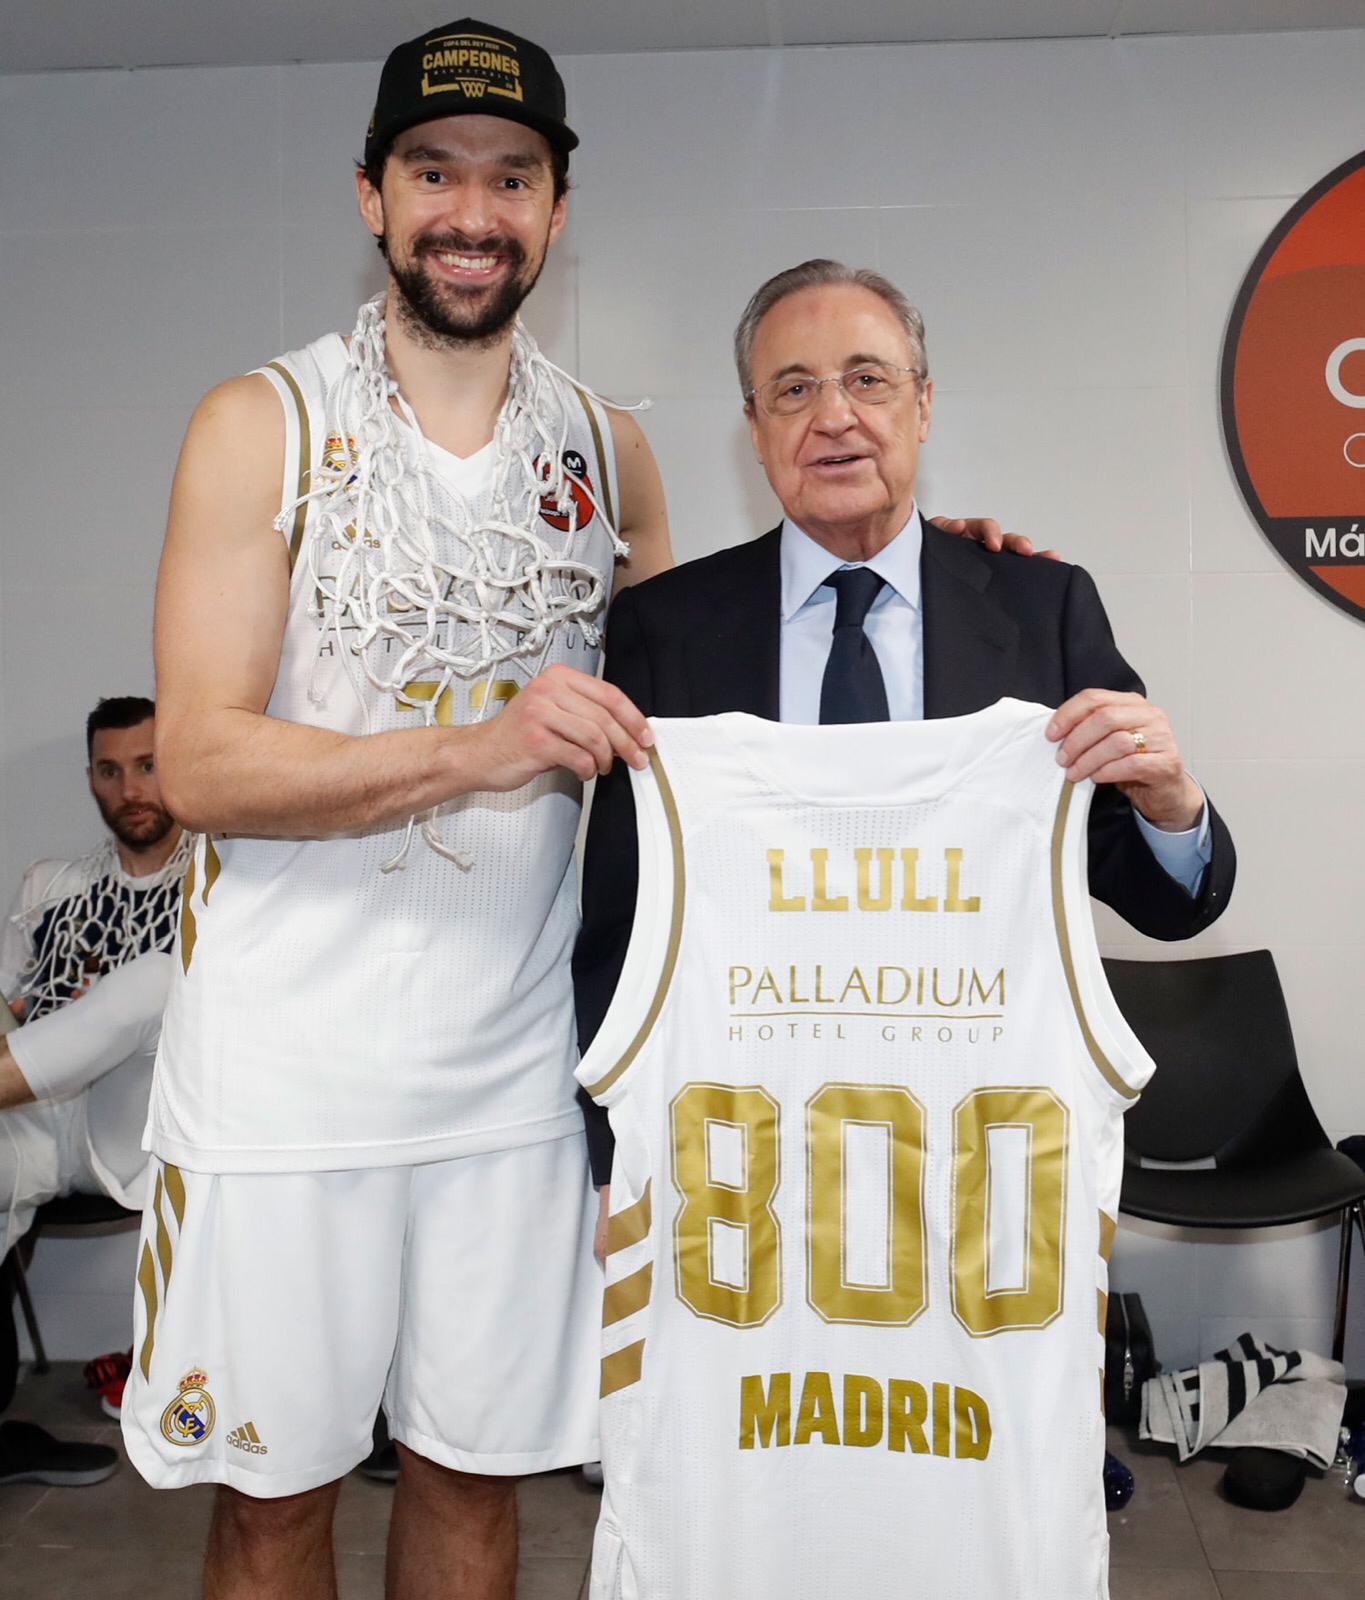 800 games with Real Madrid's jersey